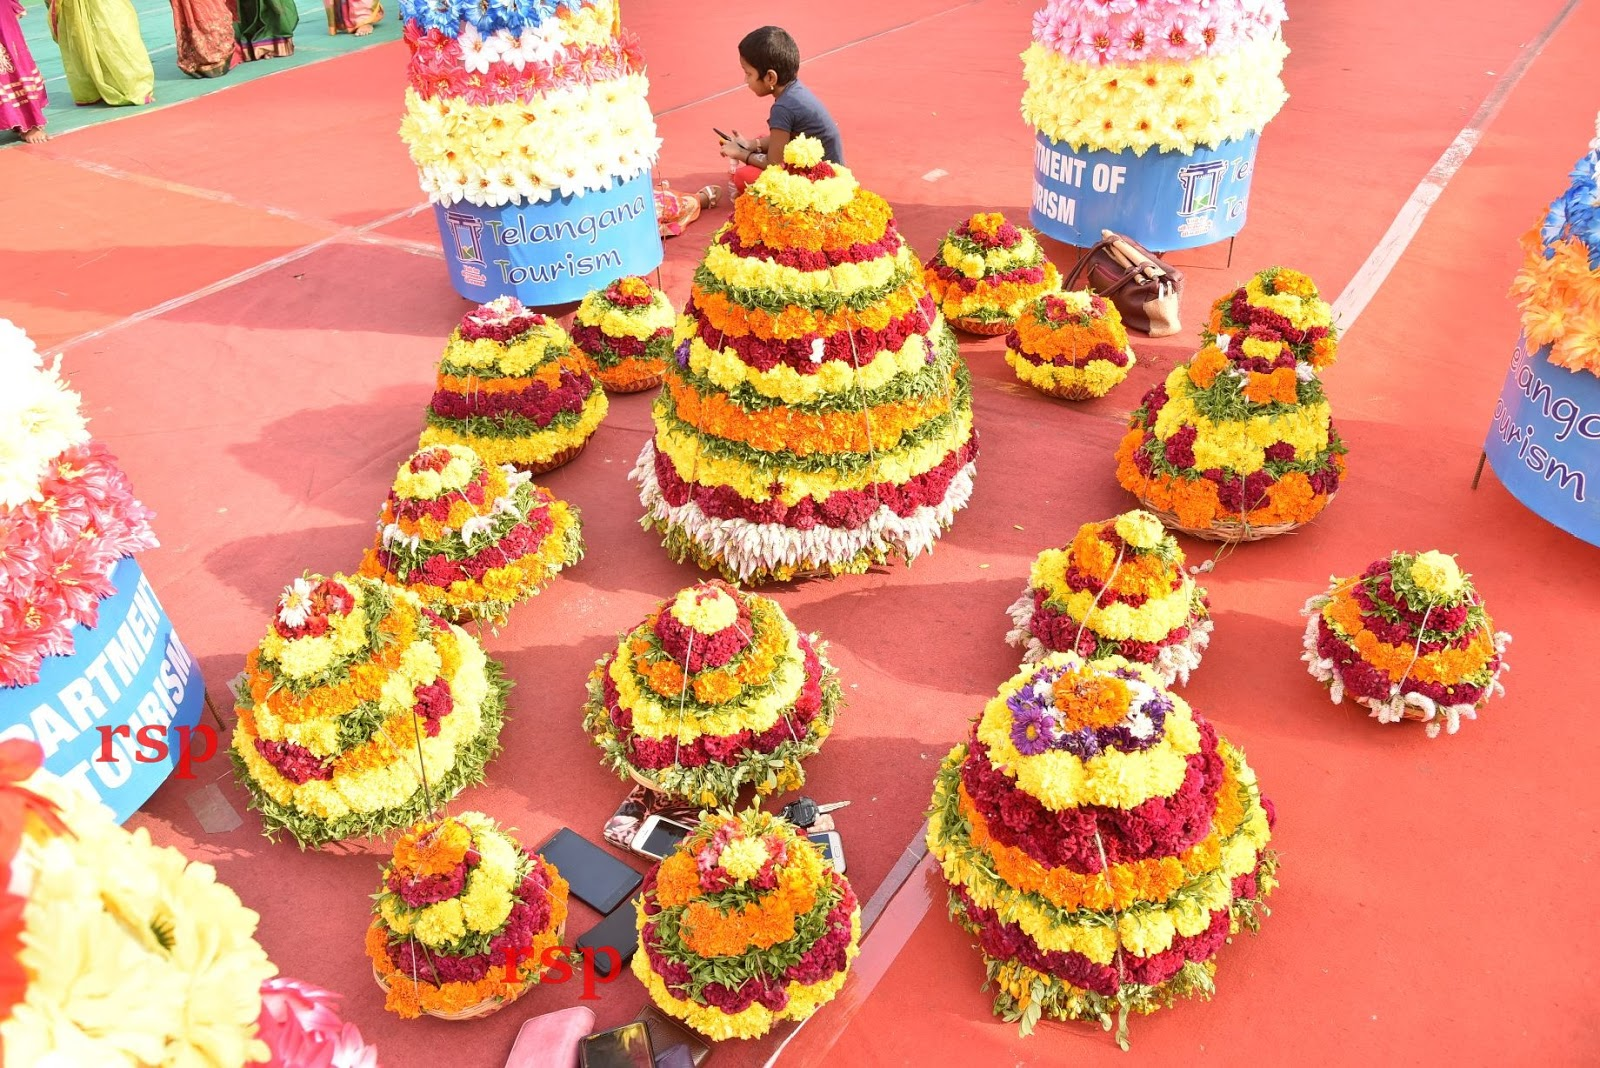 Telangana during Bathukamma